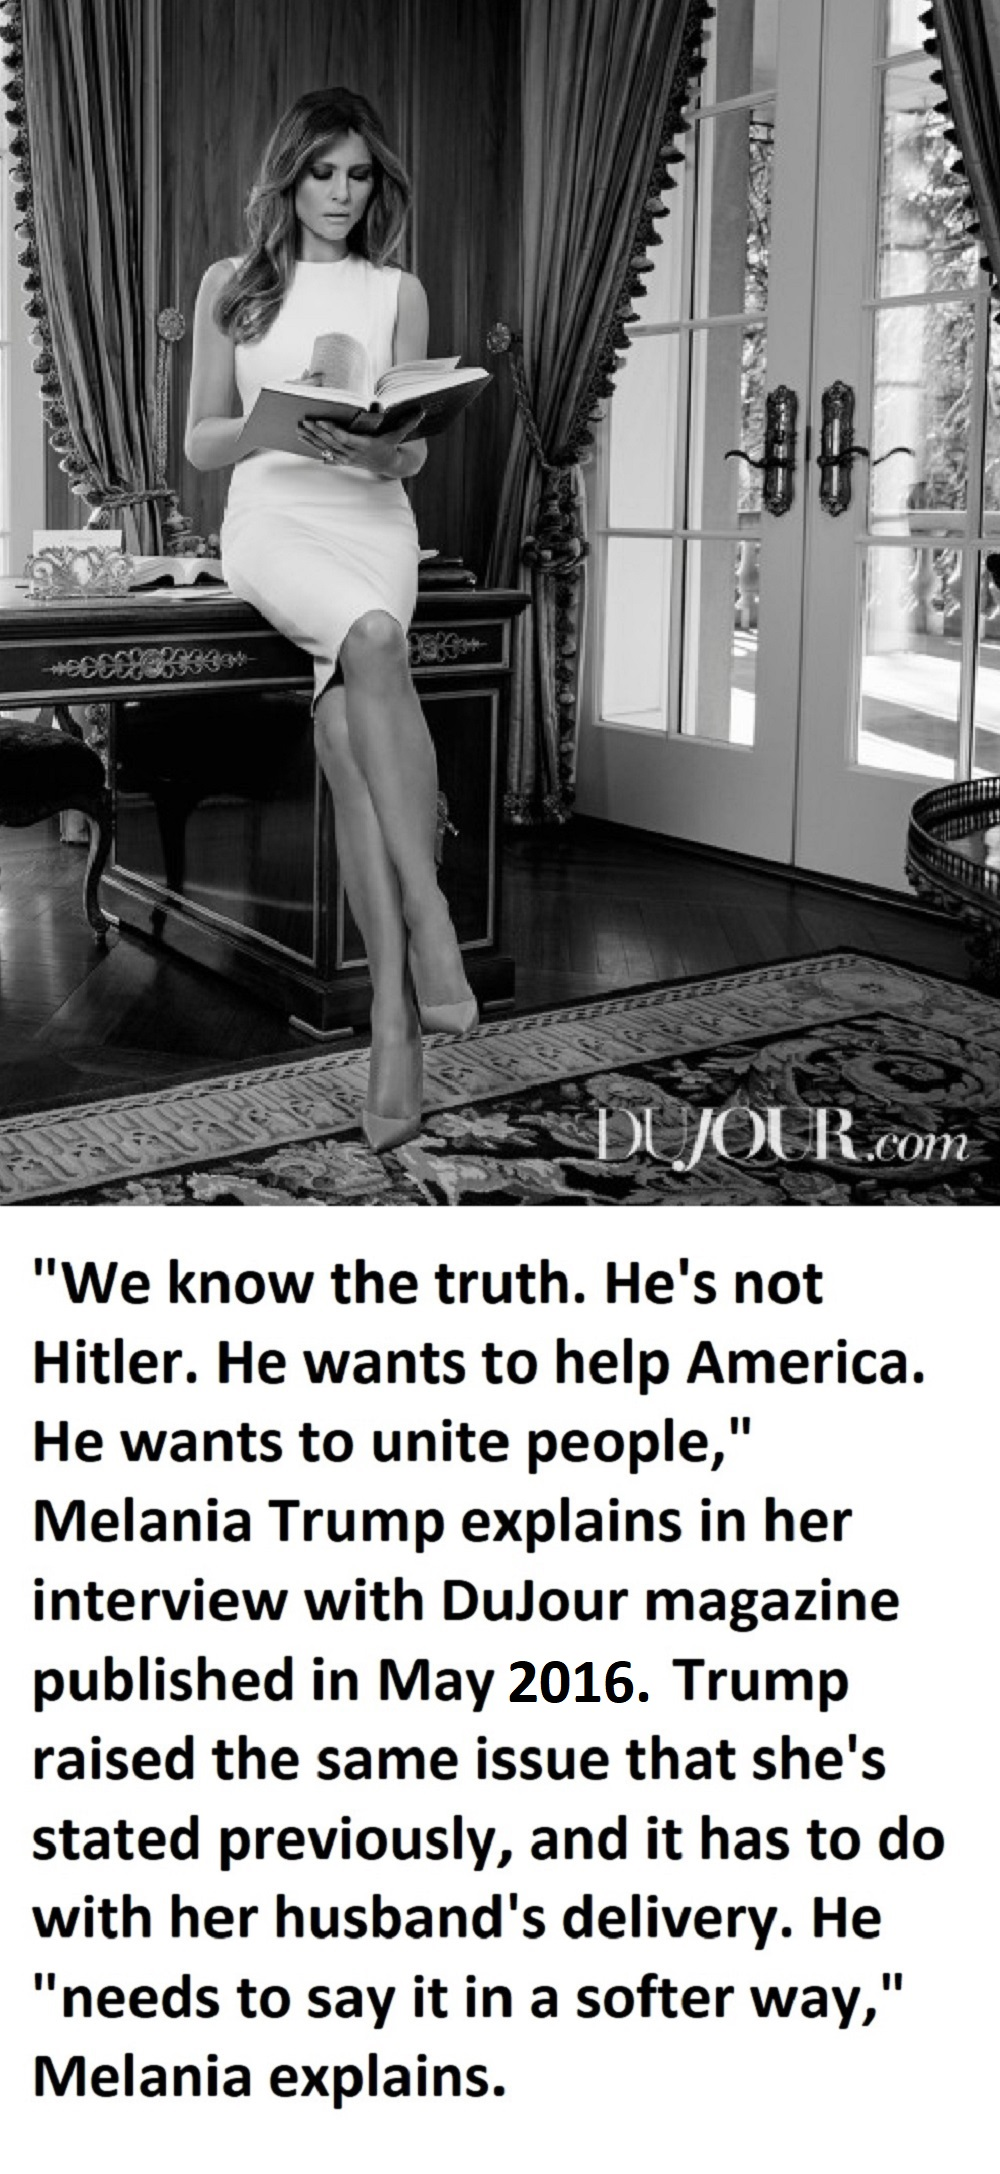 1-Melania+Trump+says+Donald+Trump+is+not+Hitler+text (1).jpg